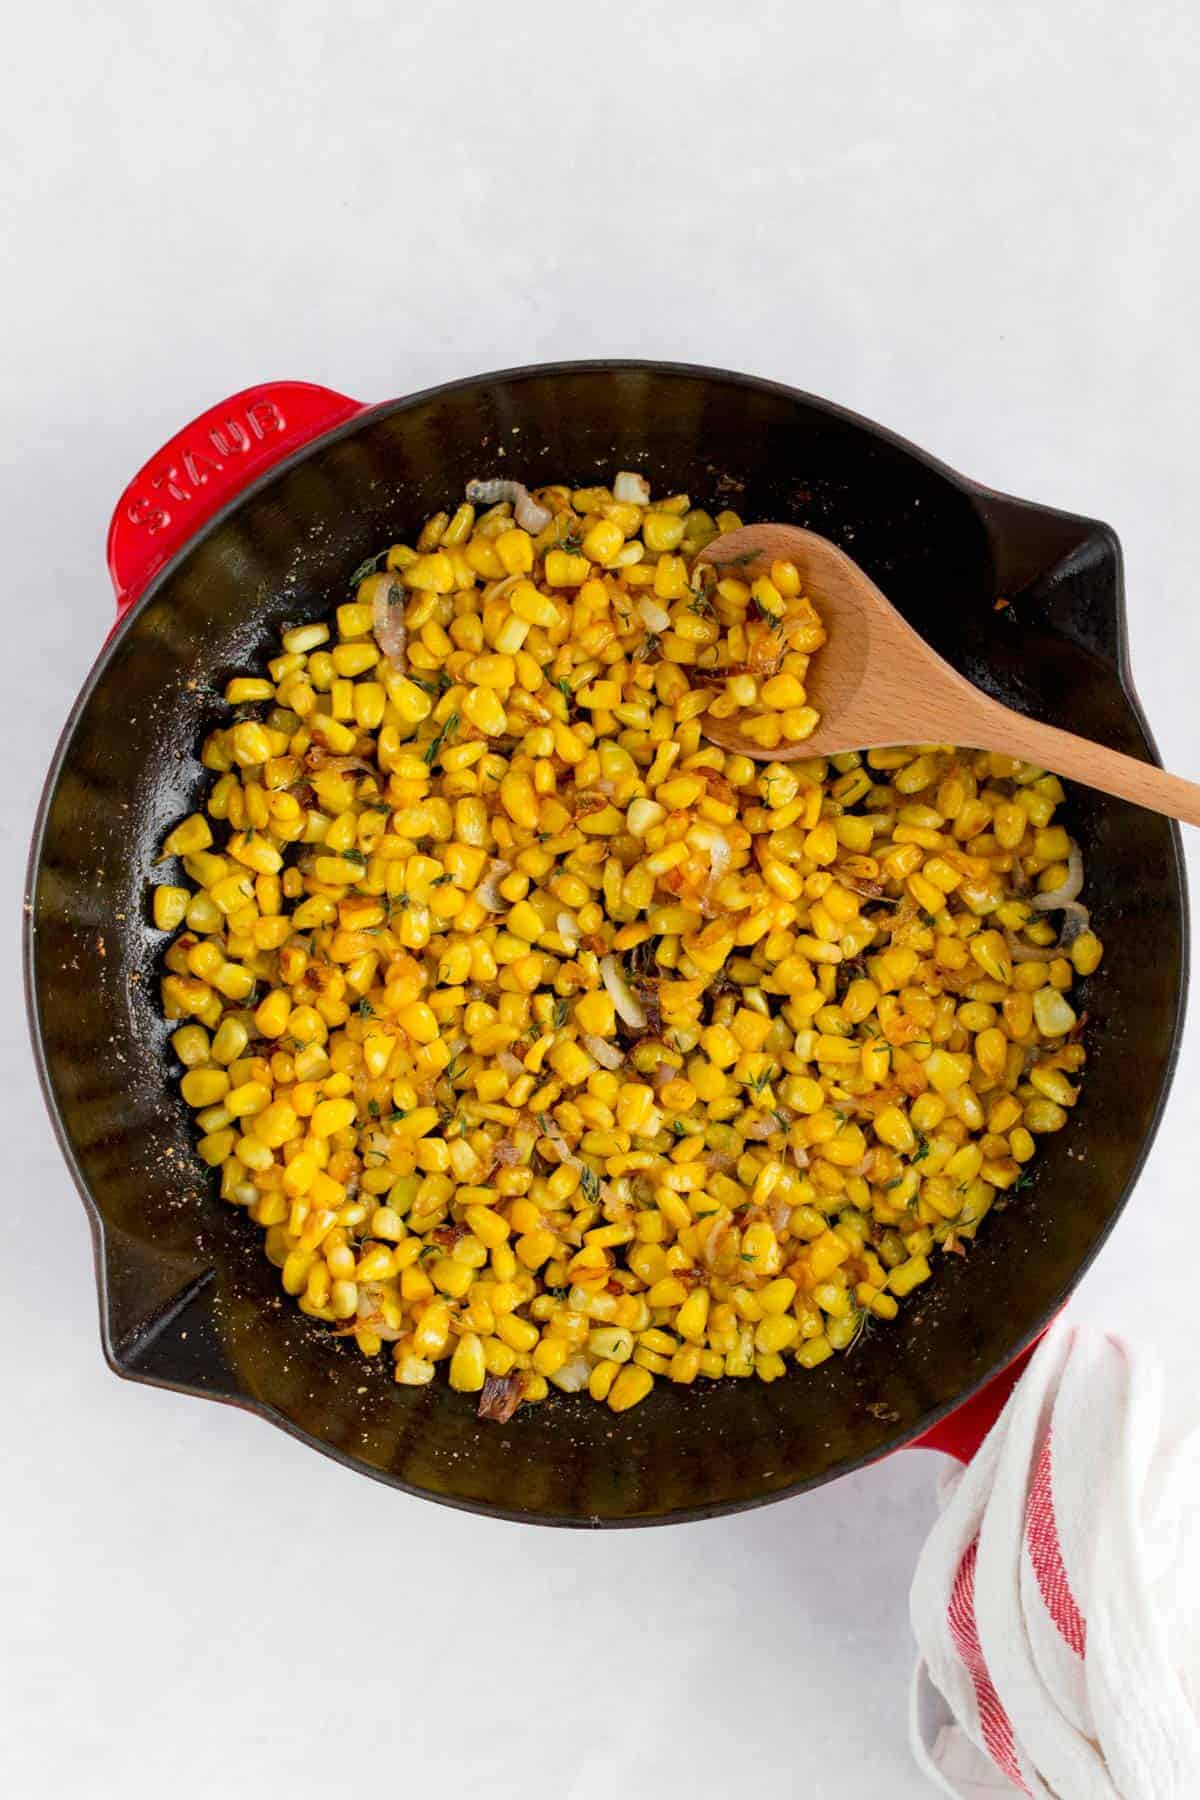 Caramelized corn with shallots in a staub frying pan.